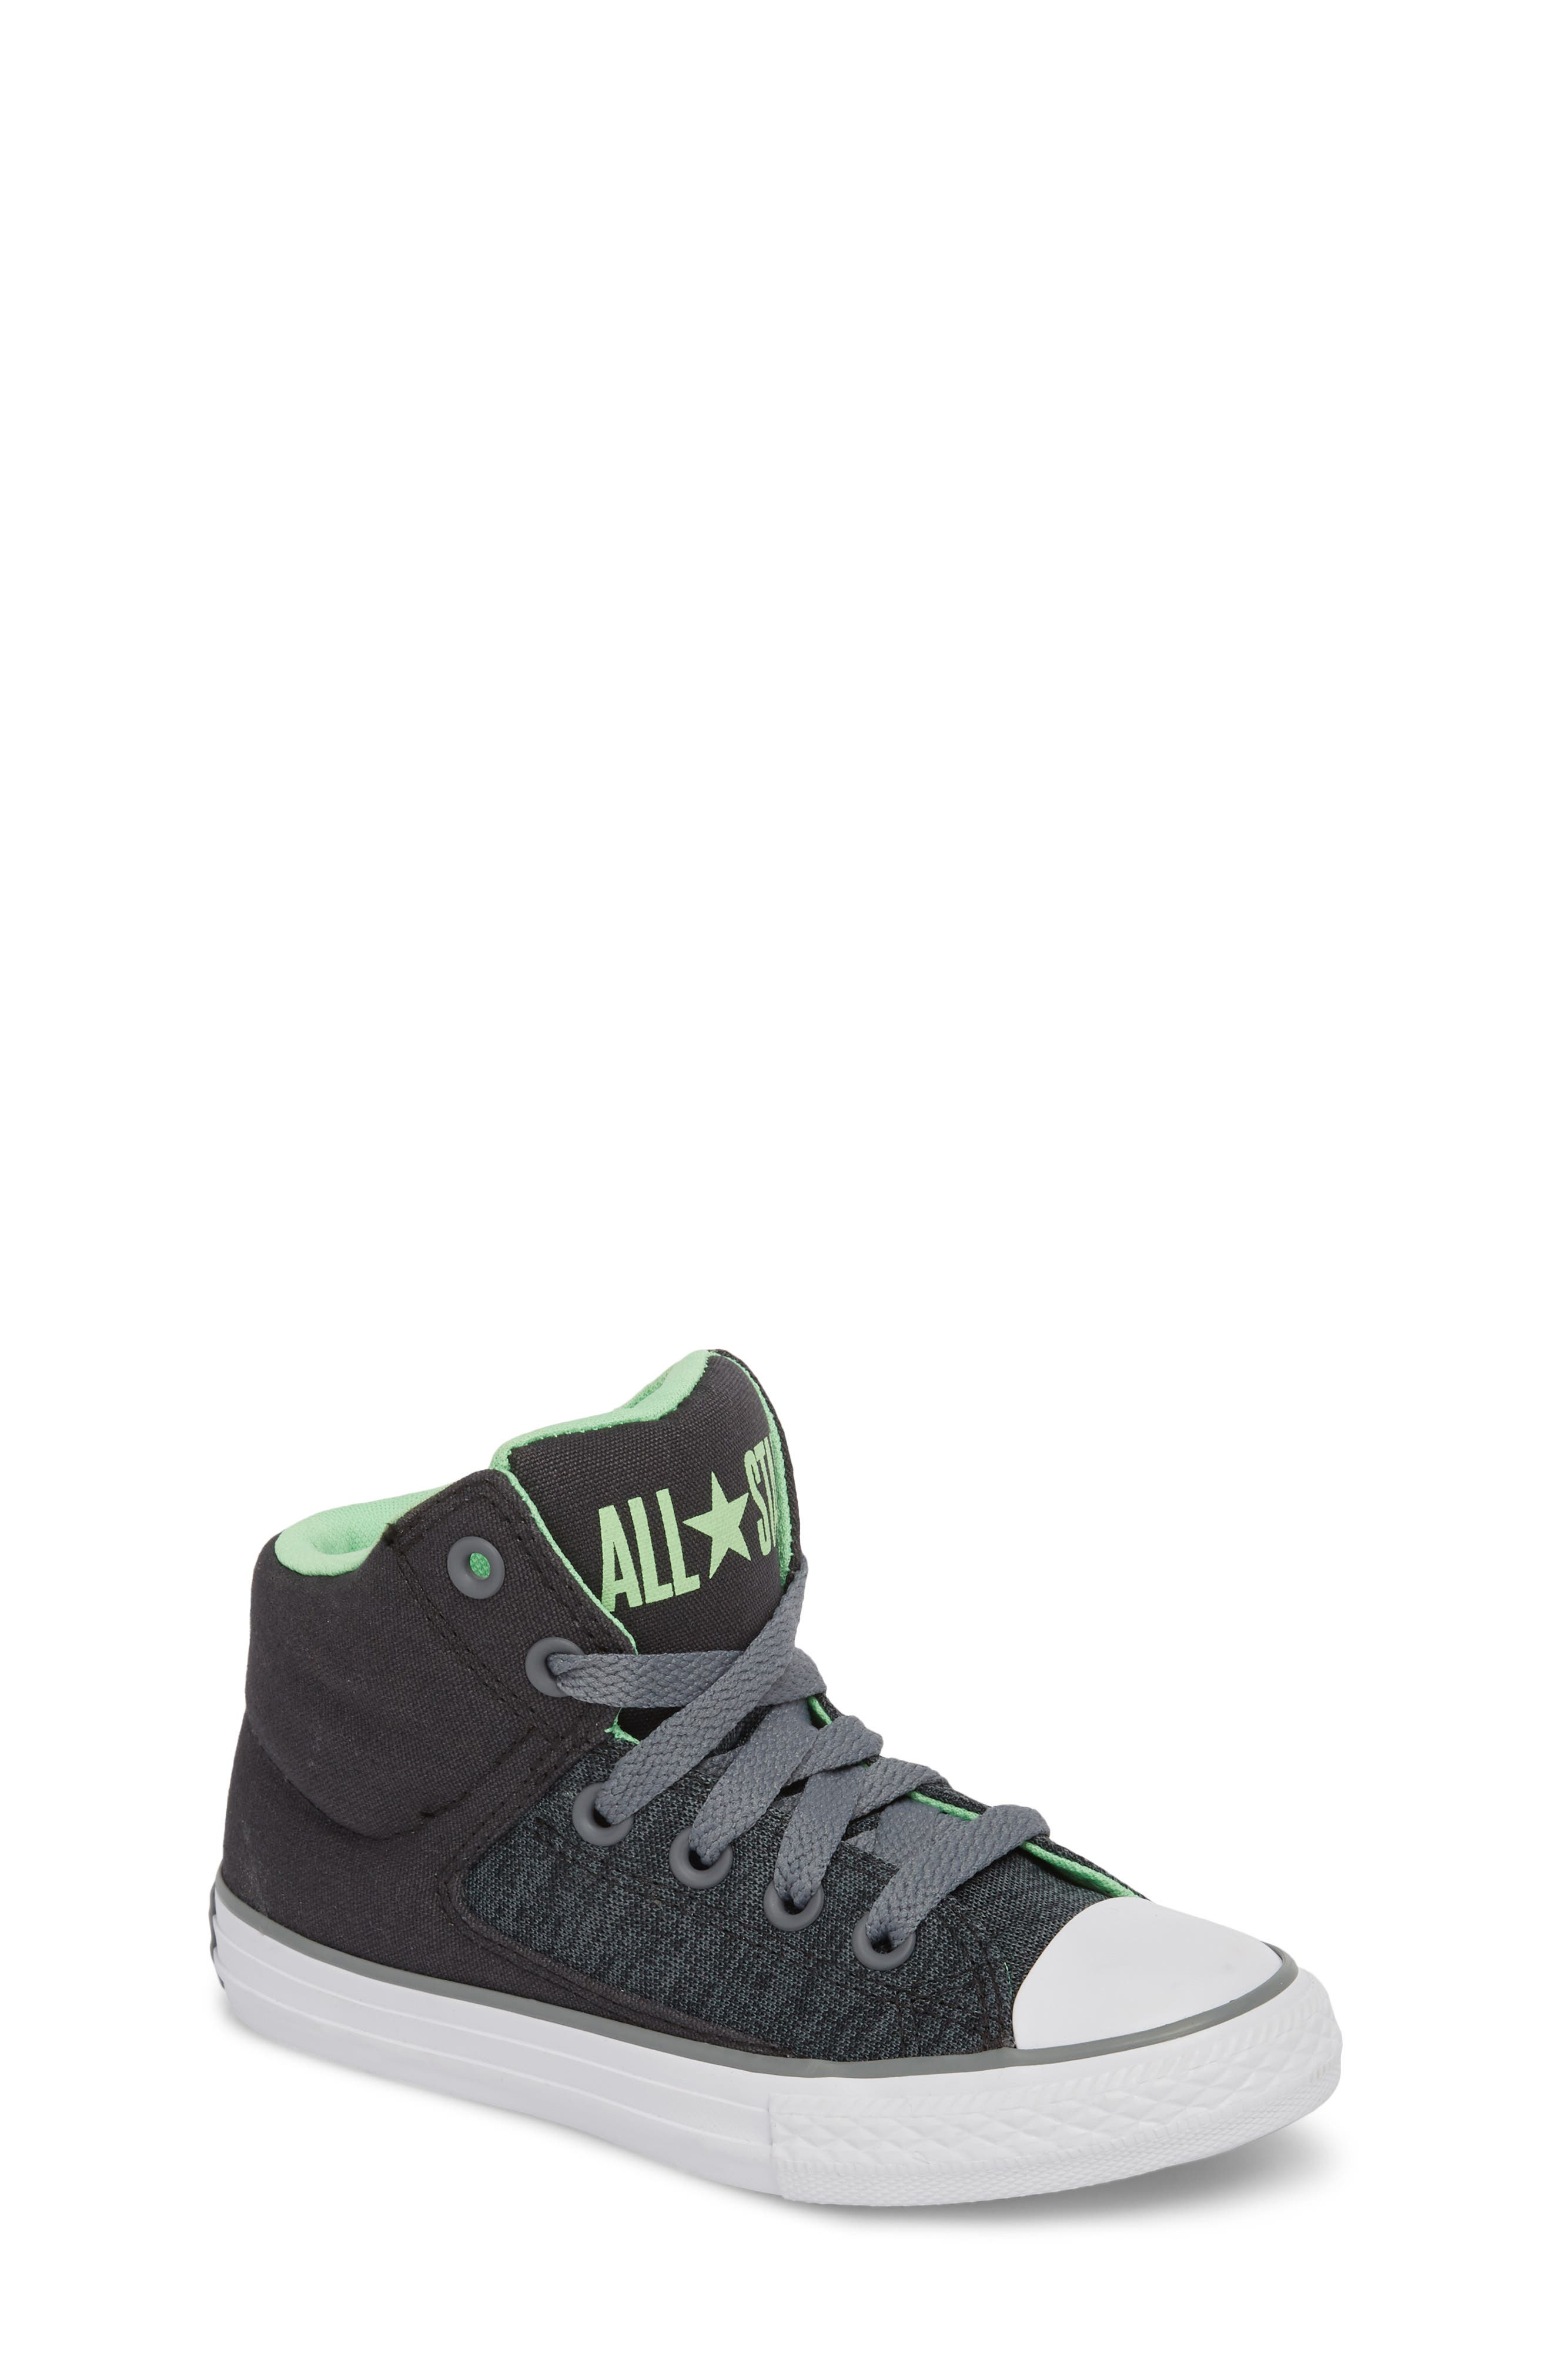 Chuck Taylor<sup>®</sup> All Star<sup>®</sup> High Street High Top Sneaker,                         Main,                         color, 012